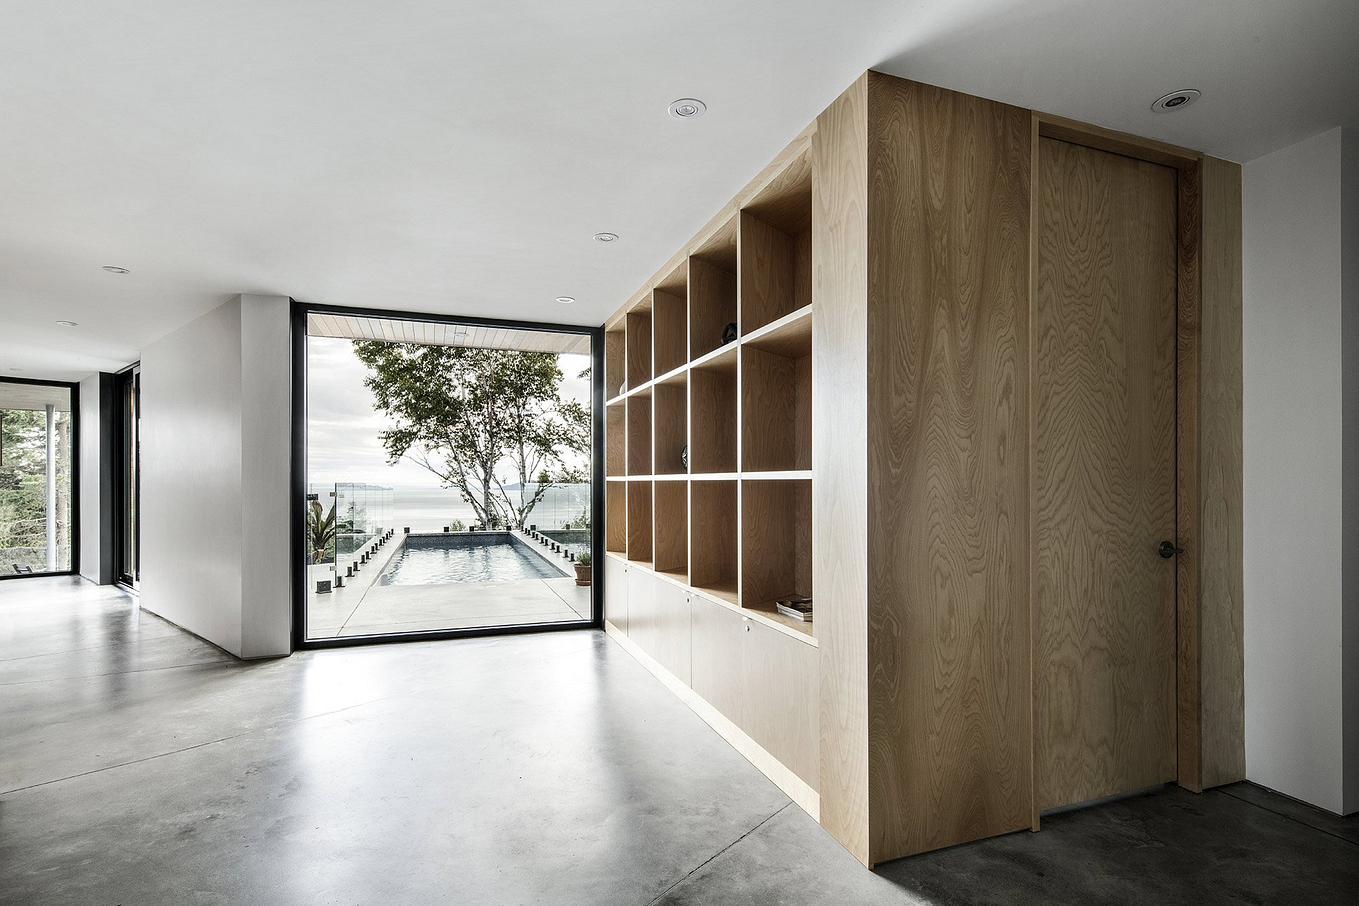 altair-house-bourgeois-lechasseur-architects-19